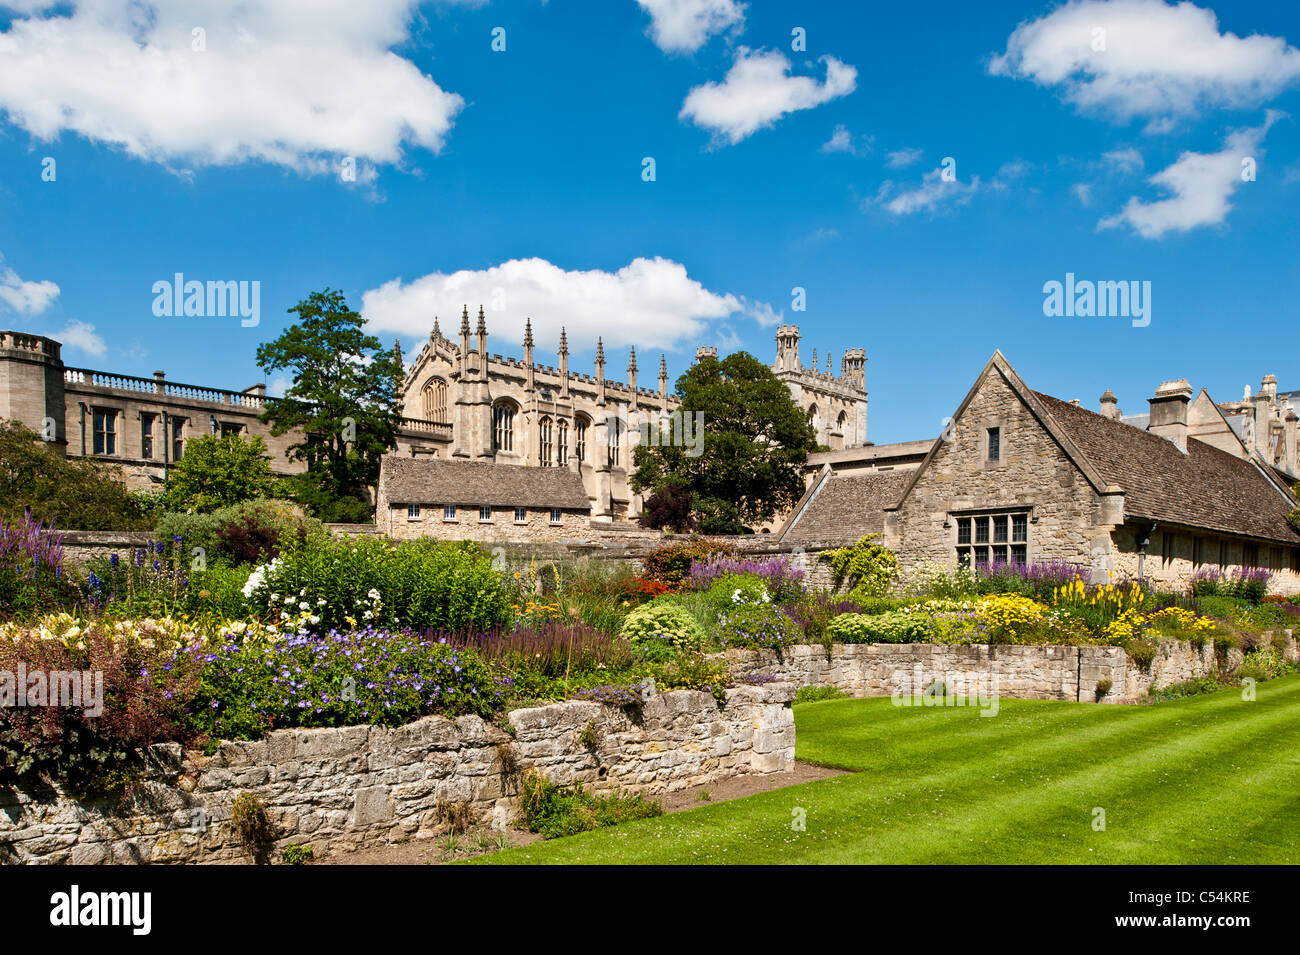 Christ Church, Oxford, Oxfordshire, United Kingdom - Stock Image